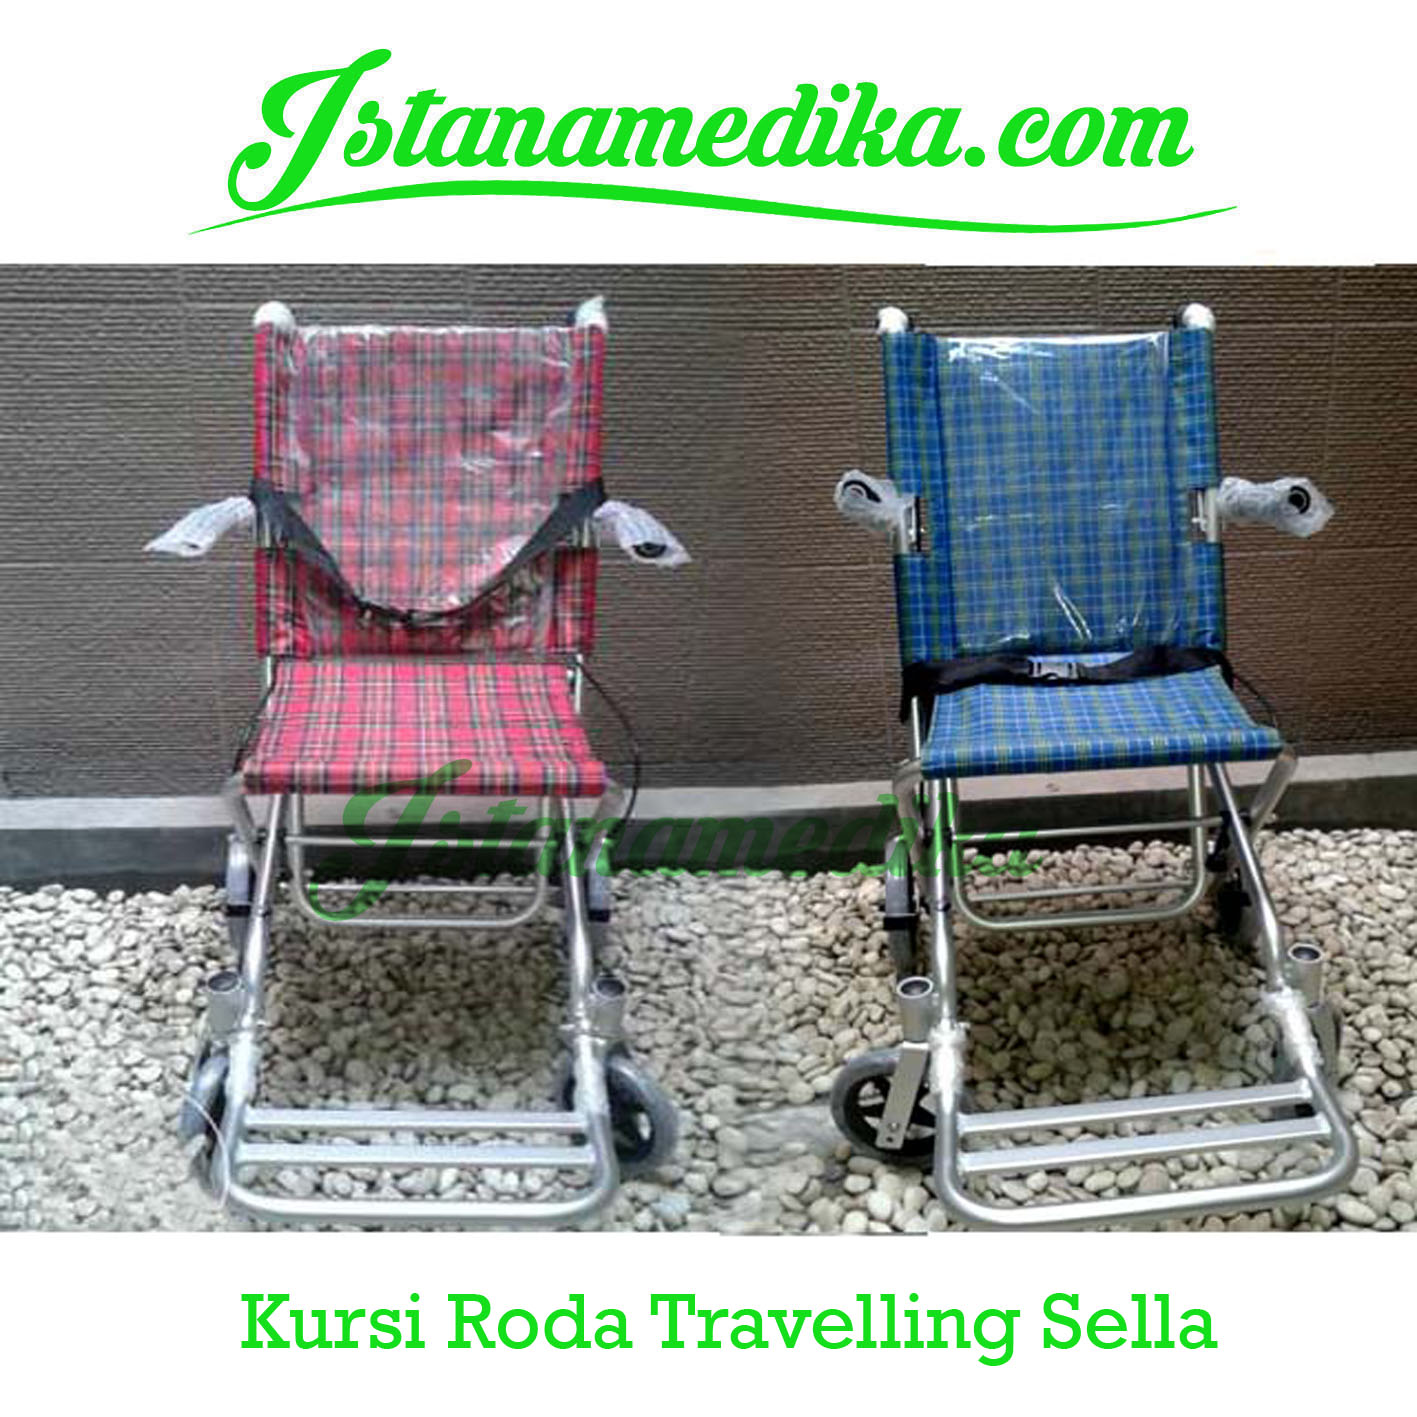 Kursi Roda Travelling Sella